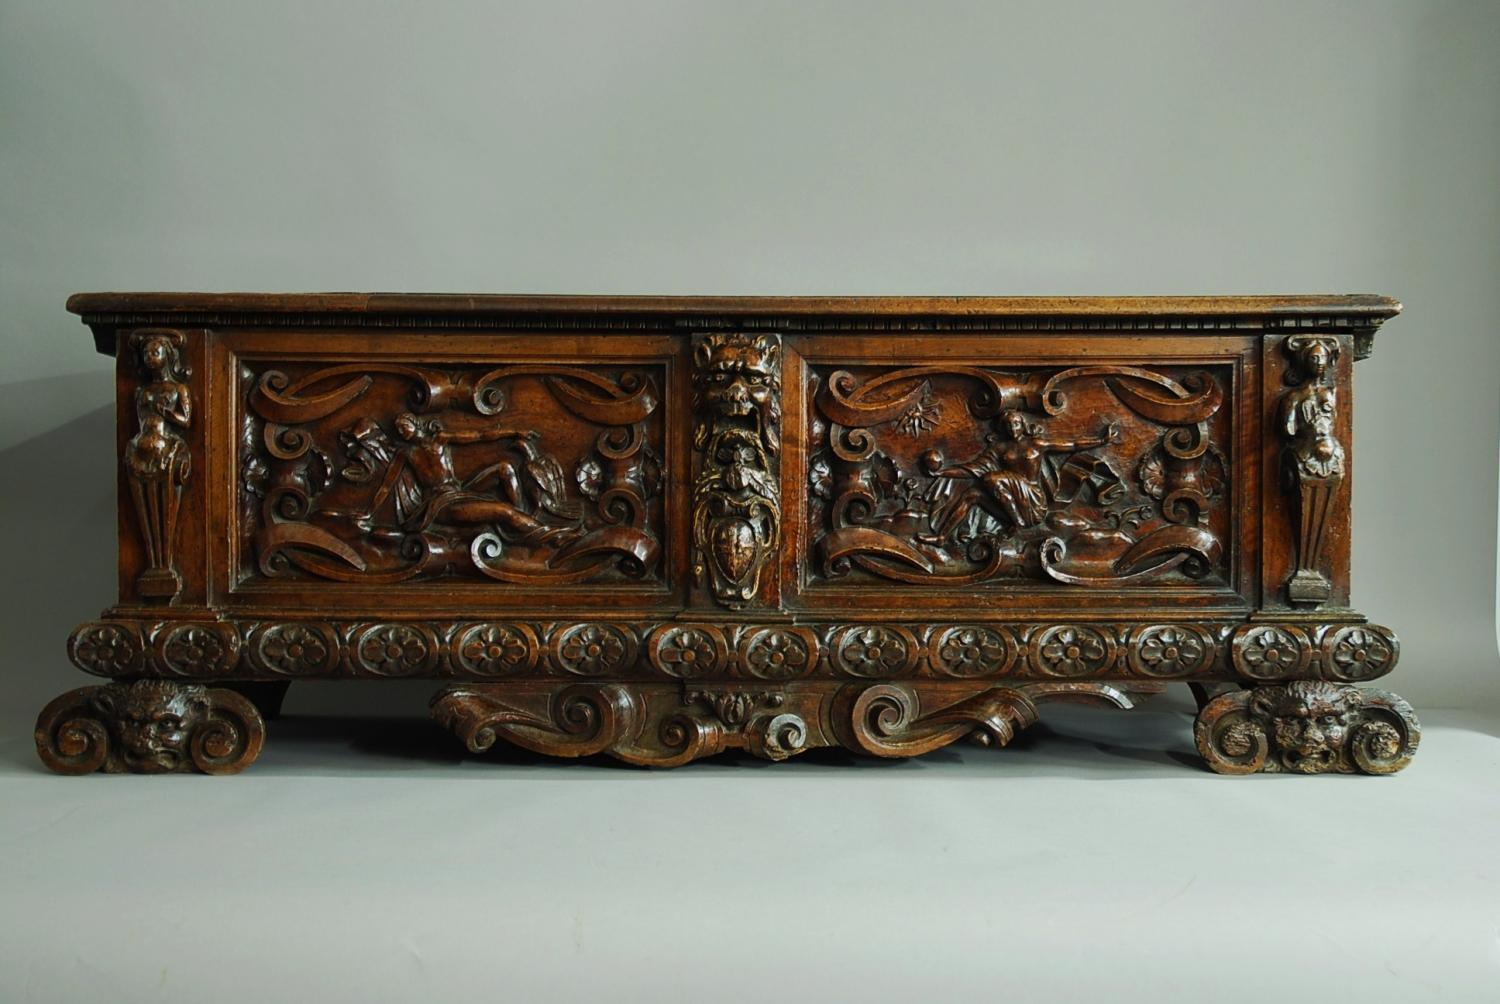 Italian late 16th century walnut cassone